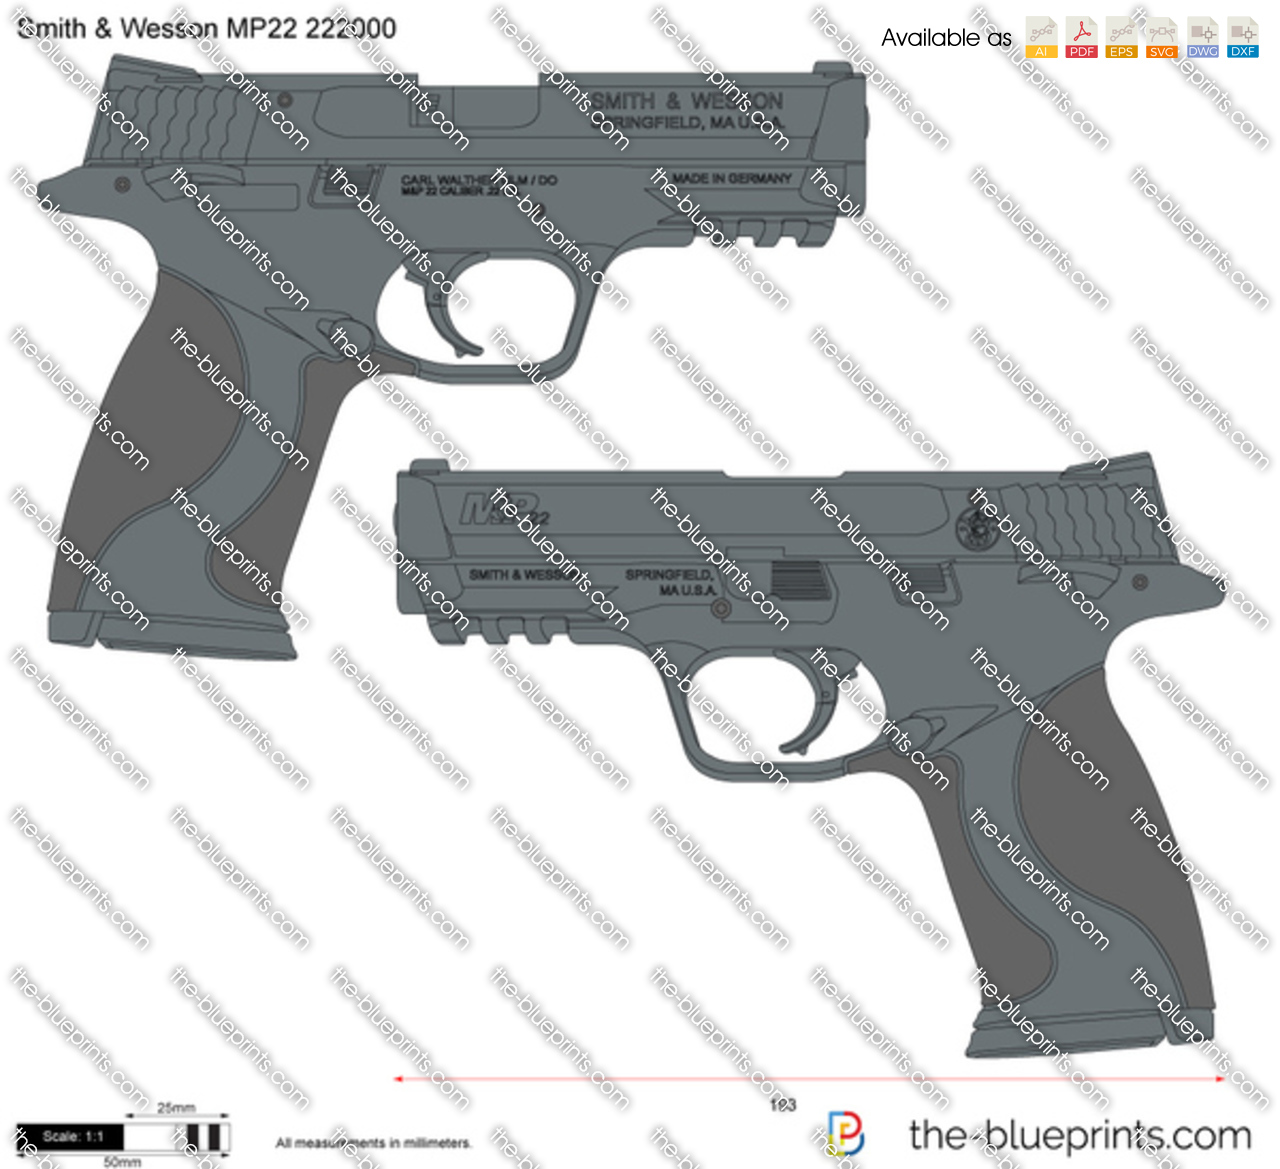 Smith & Wesson MP22 222000